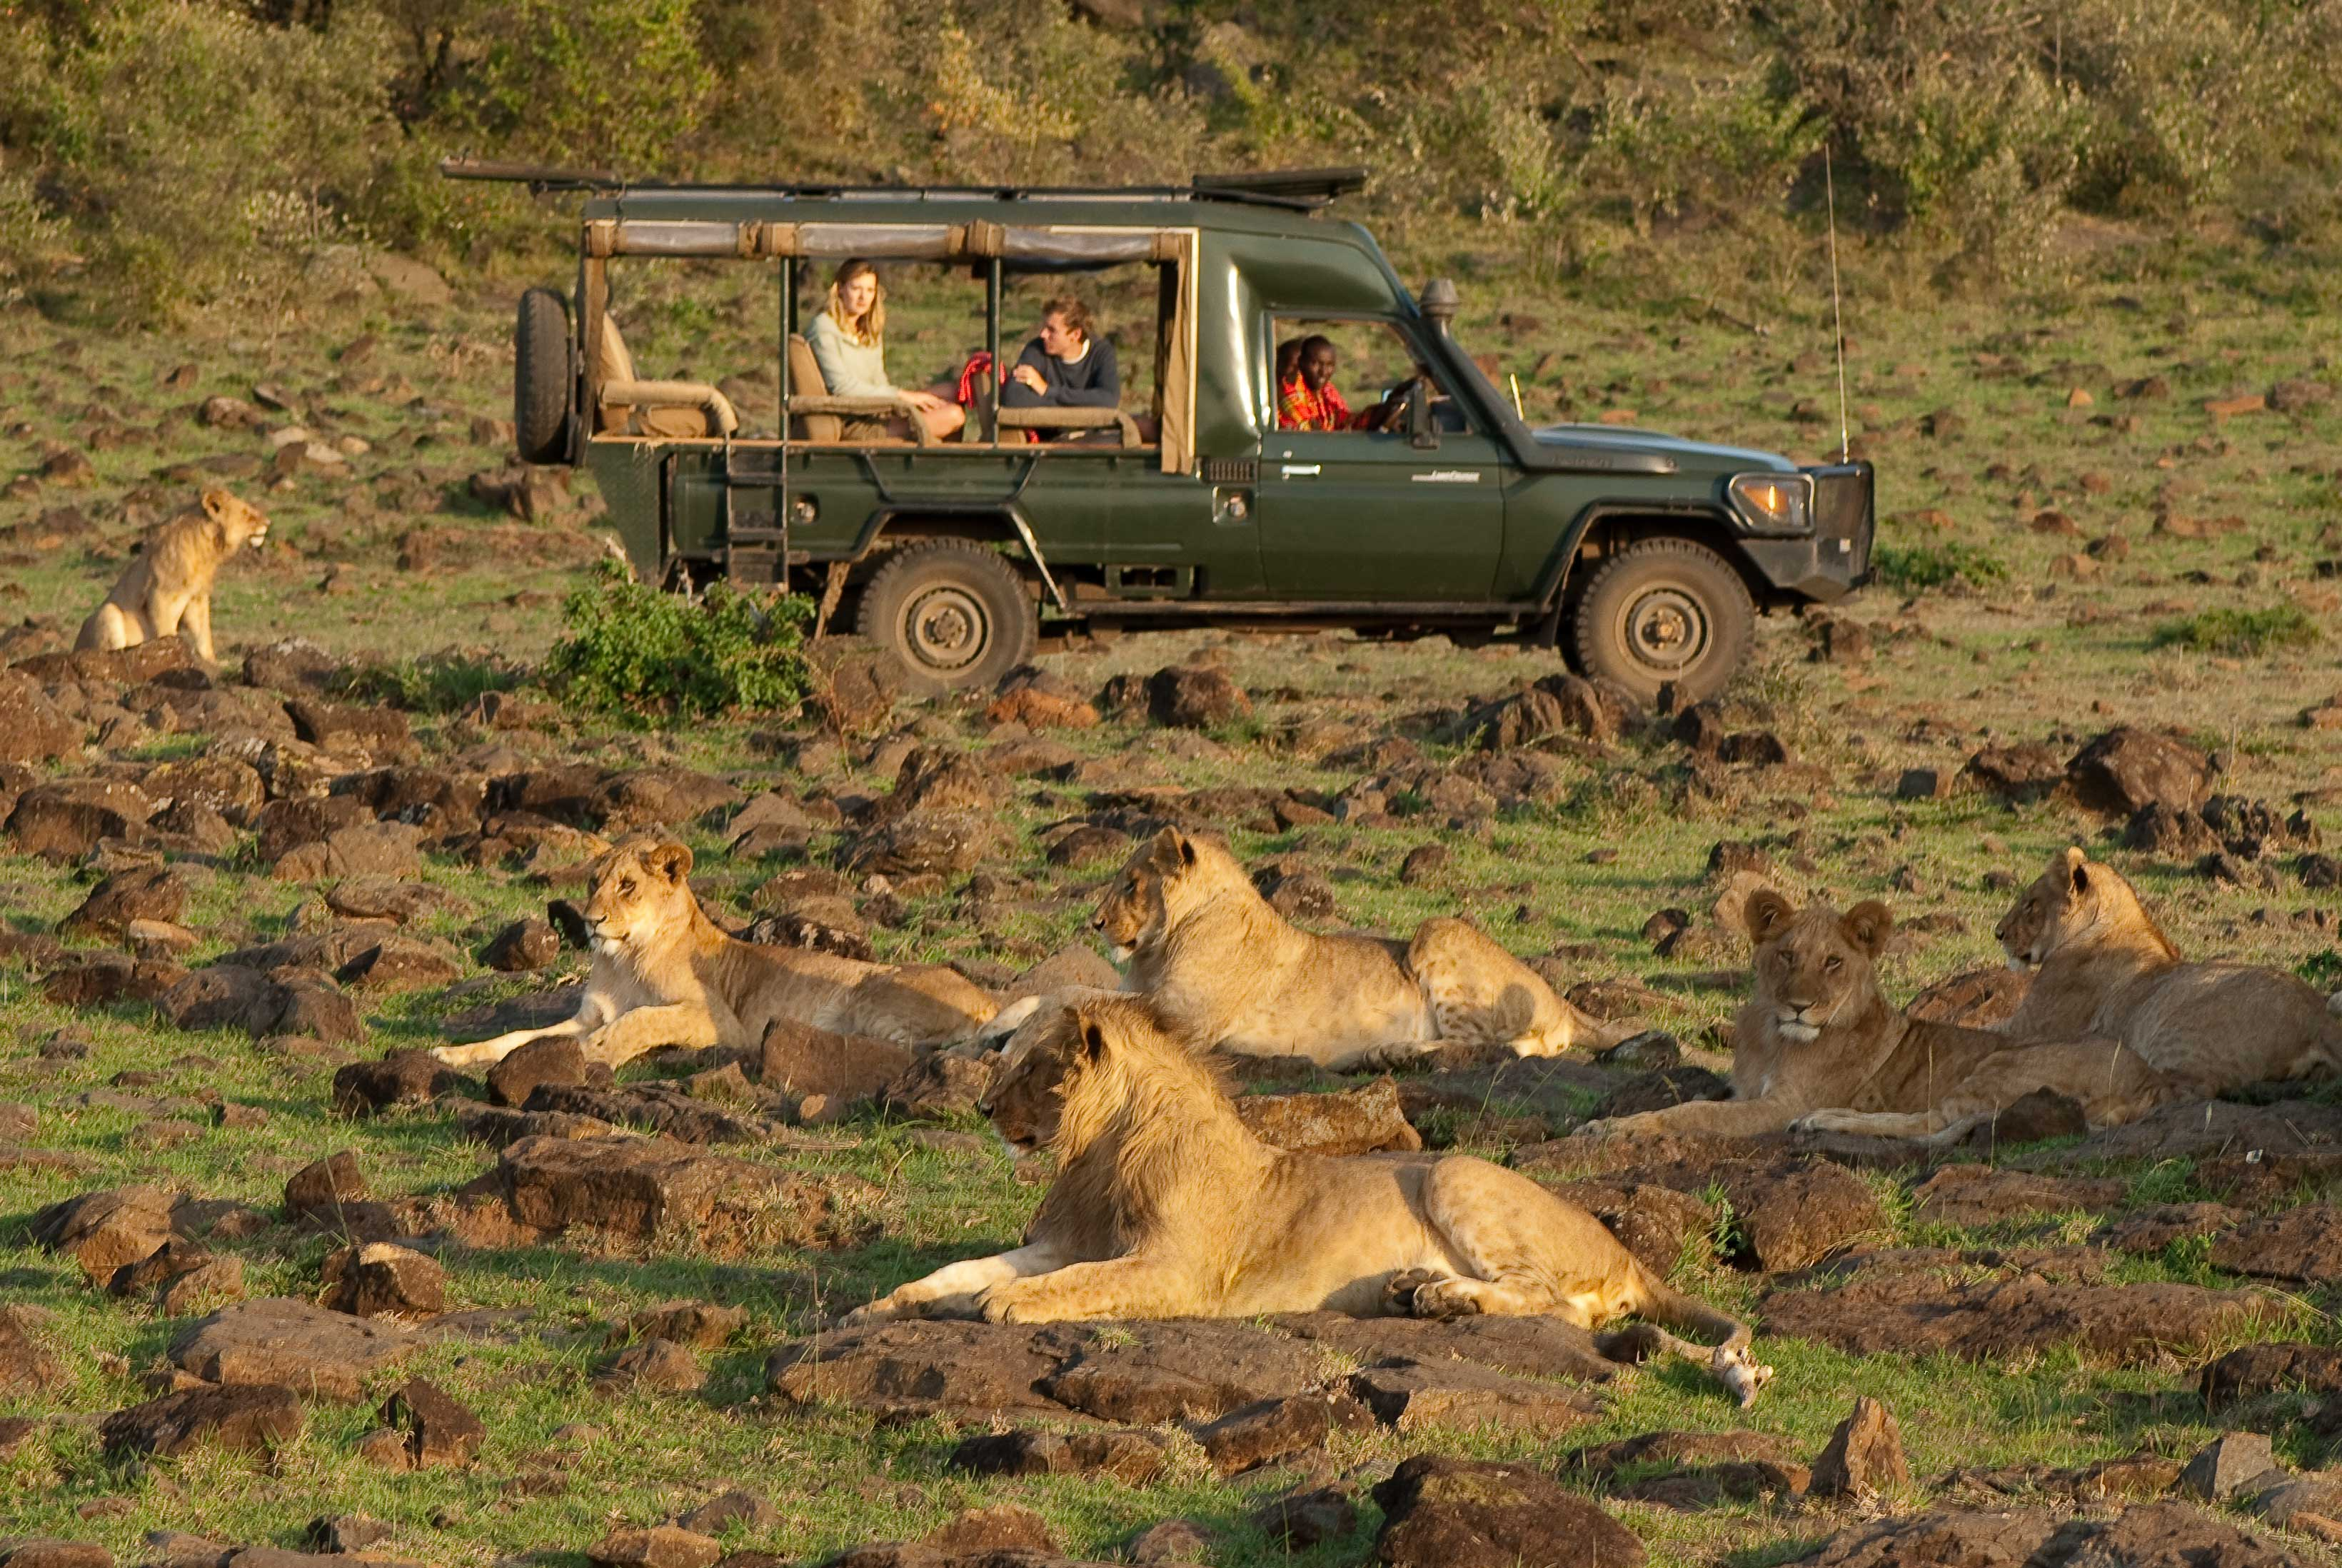 lions-and-car-1-of-1.jpg